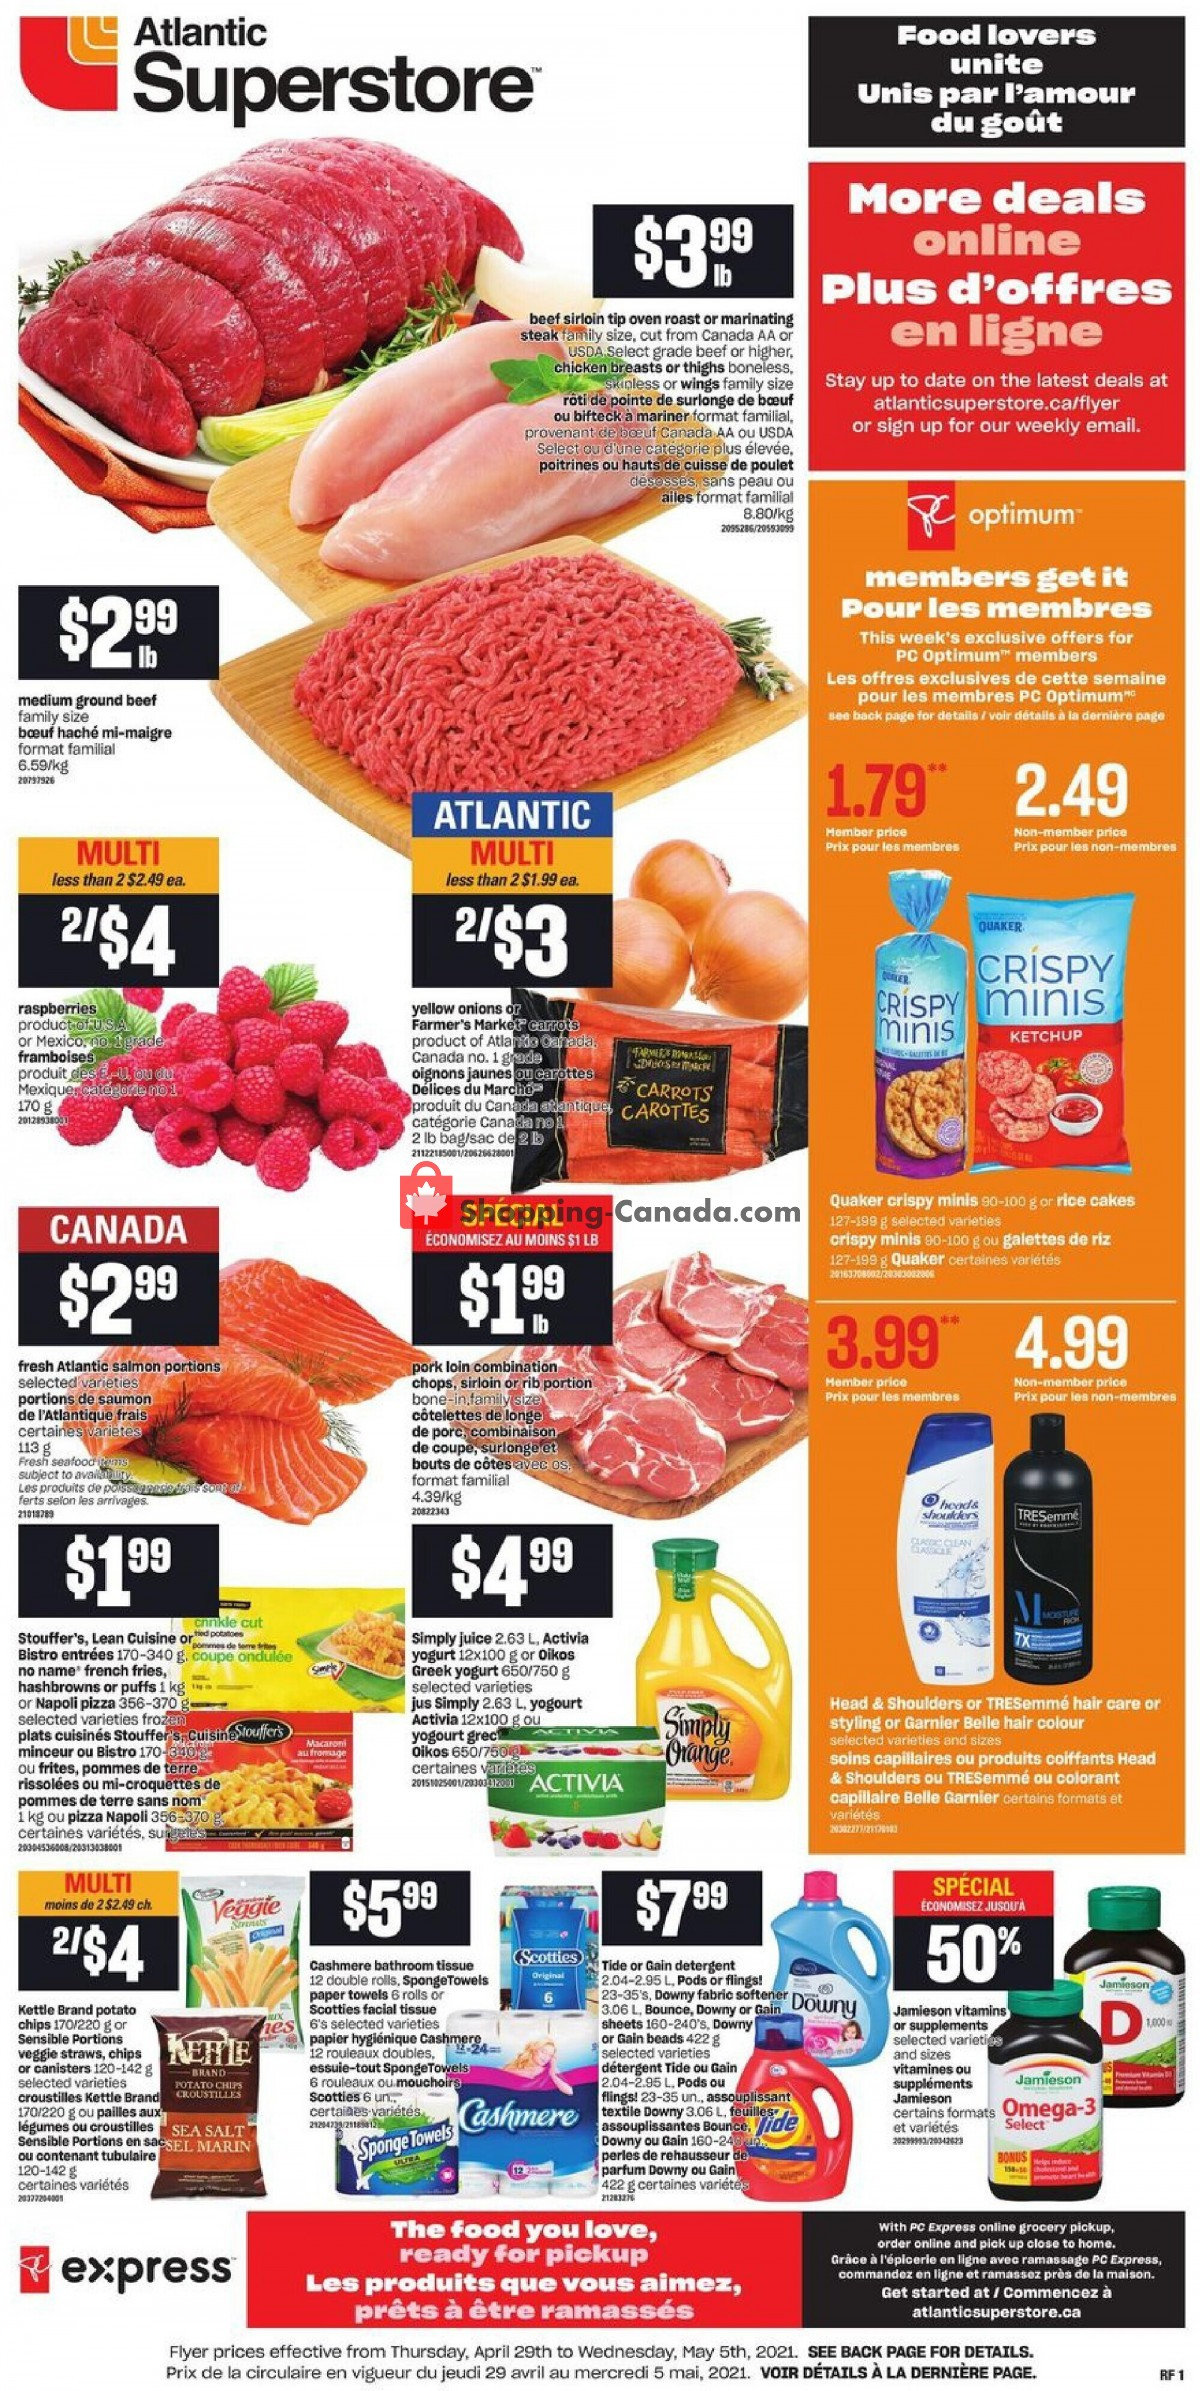 Flyer Atlantic Superstore Canada - from Thursday April 29, 2021 to Wednesday May 5, 2021